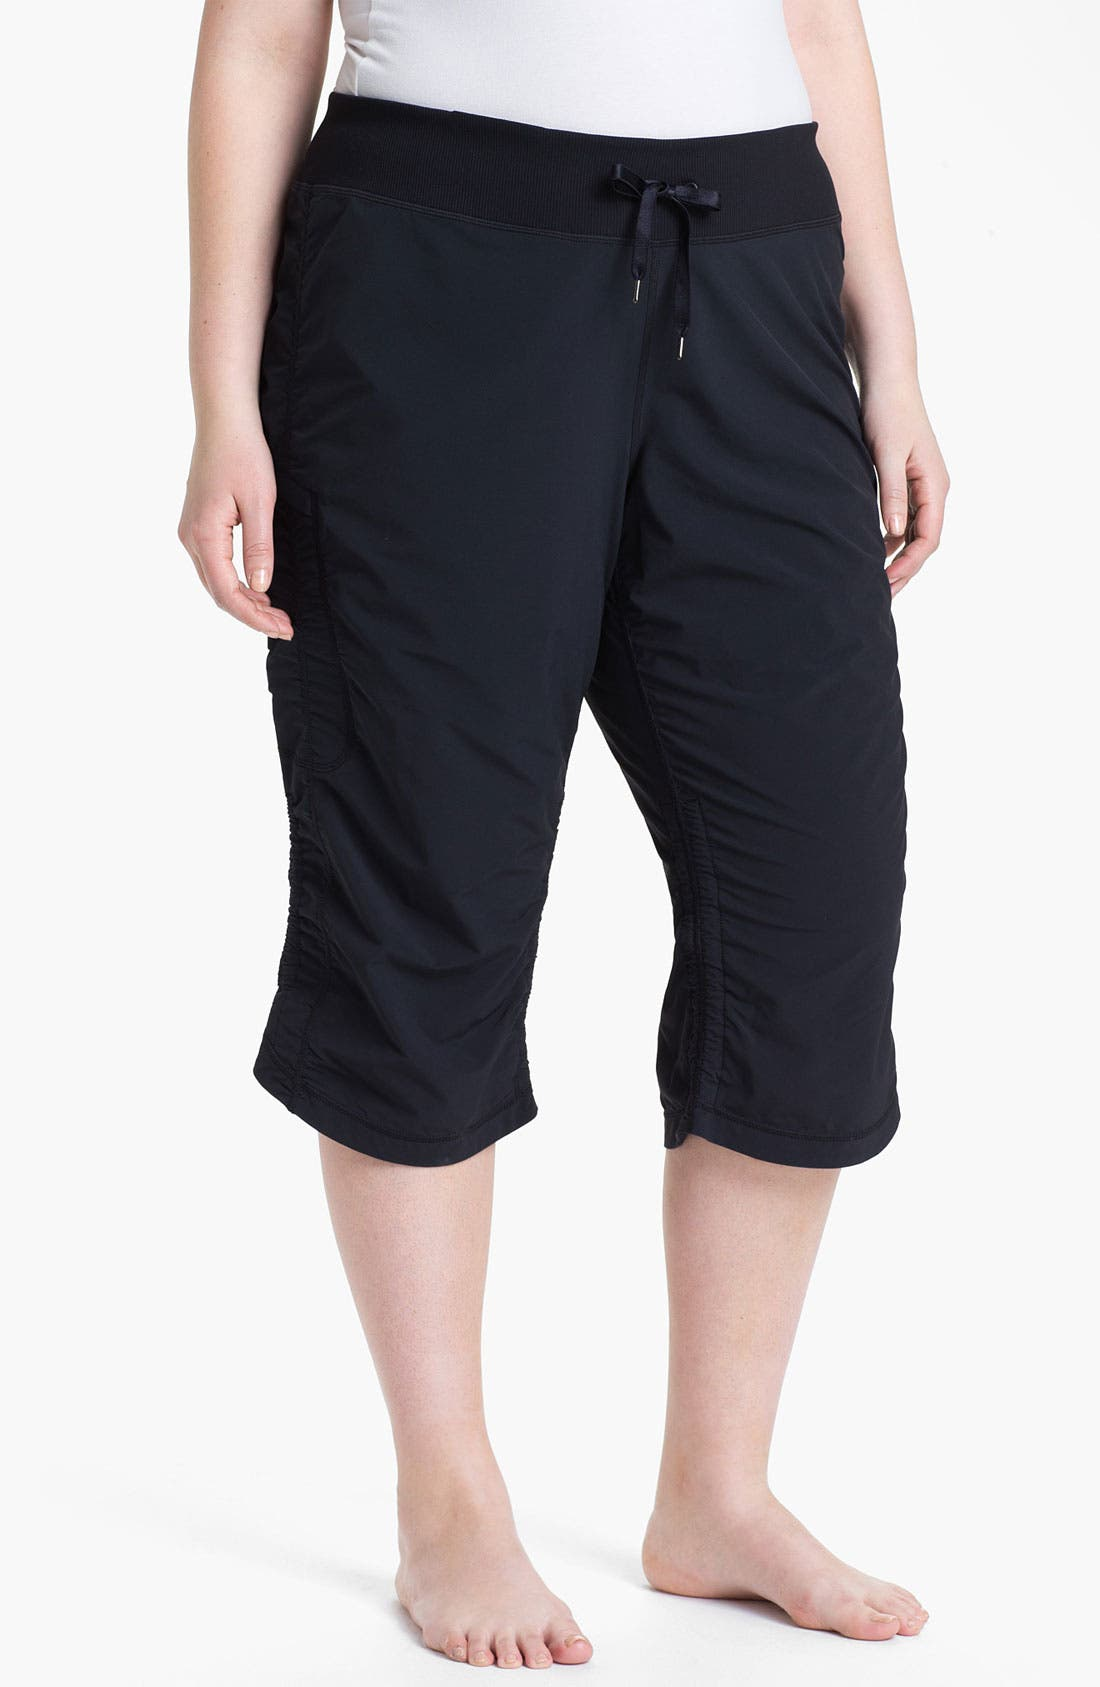 Alternate Image 1 Selected - Zella 'Move It' Capris (Plus Size)